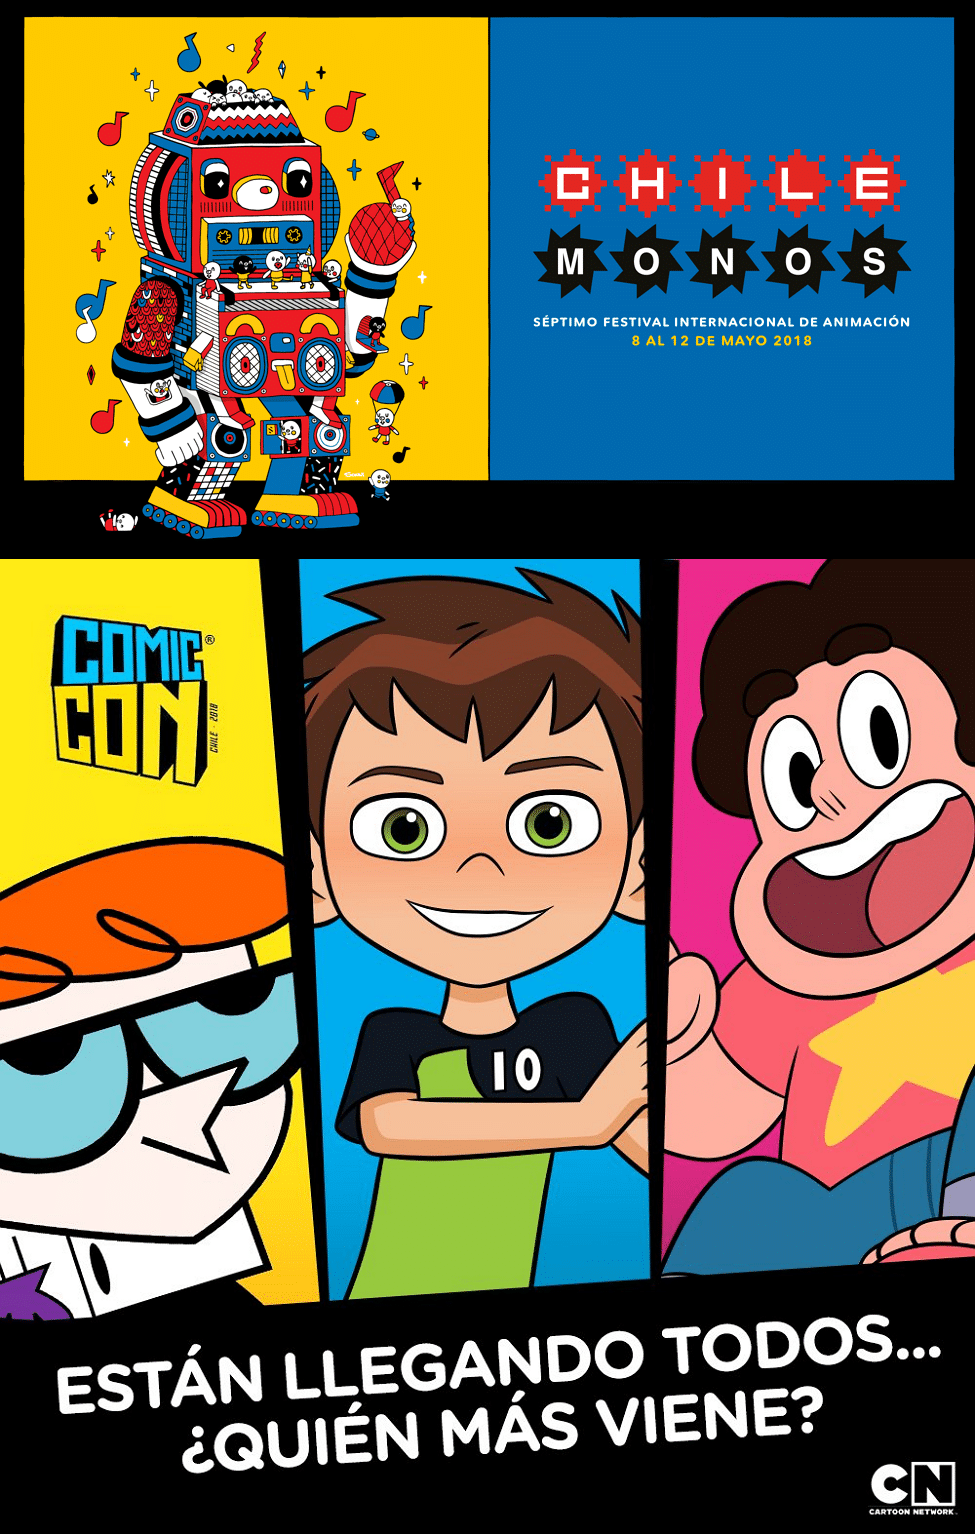 Cartoon Network At The Chilemonos Animation Festival And Chile Comic Con 2018